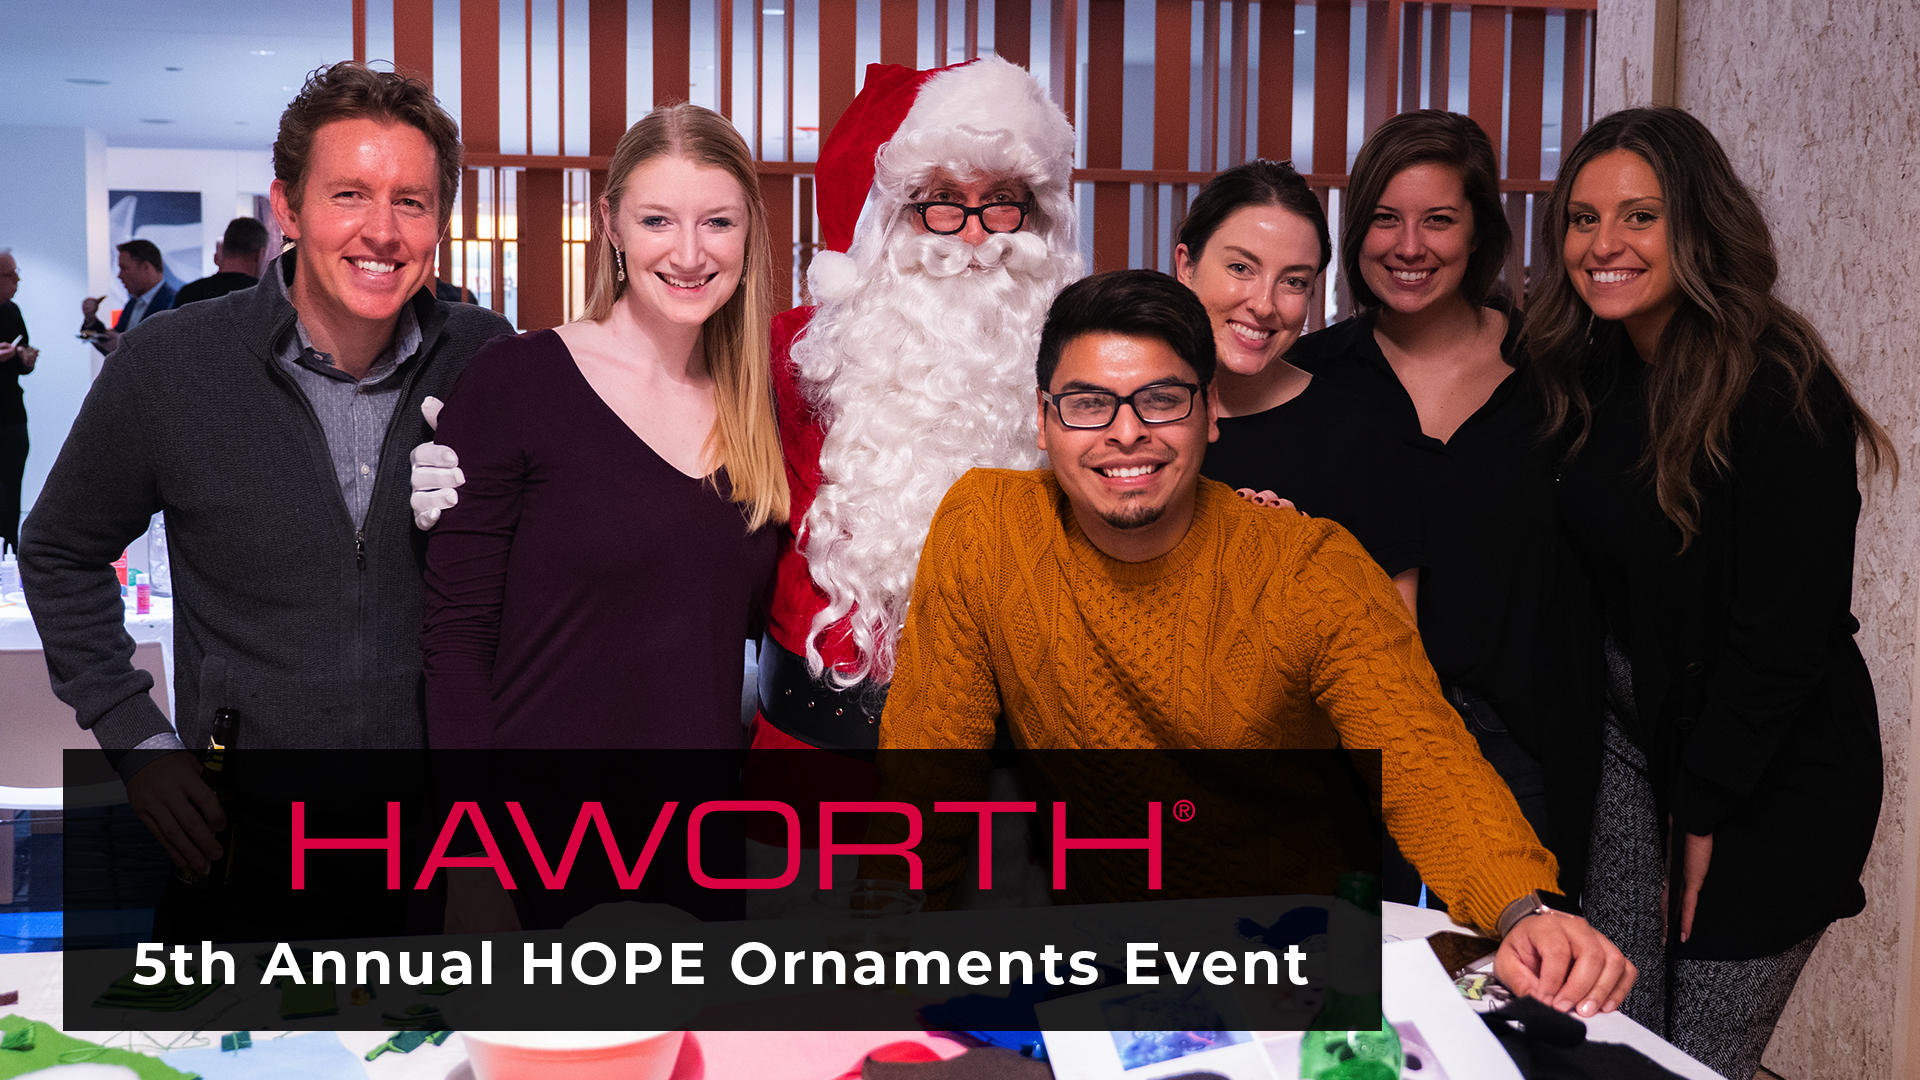 Haworth HOPE Ornaments 2018